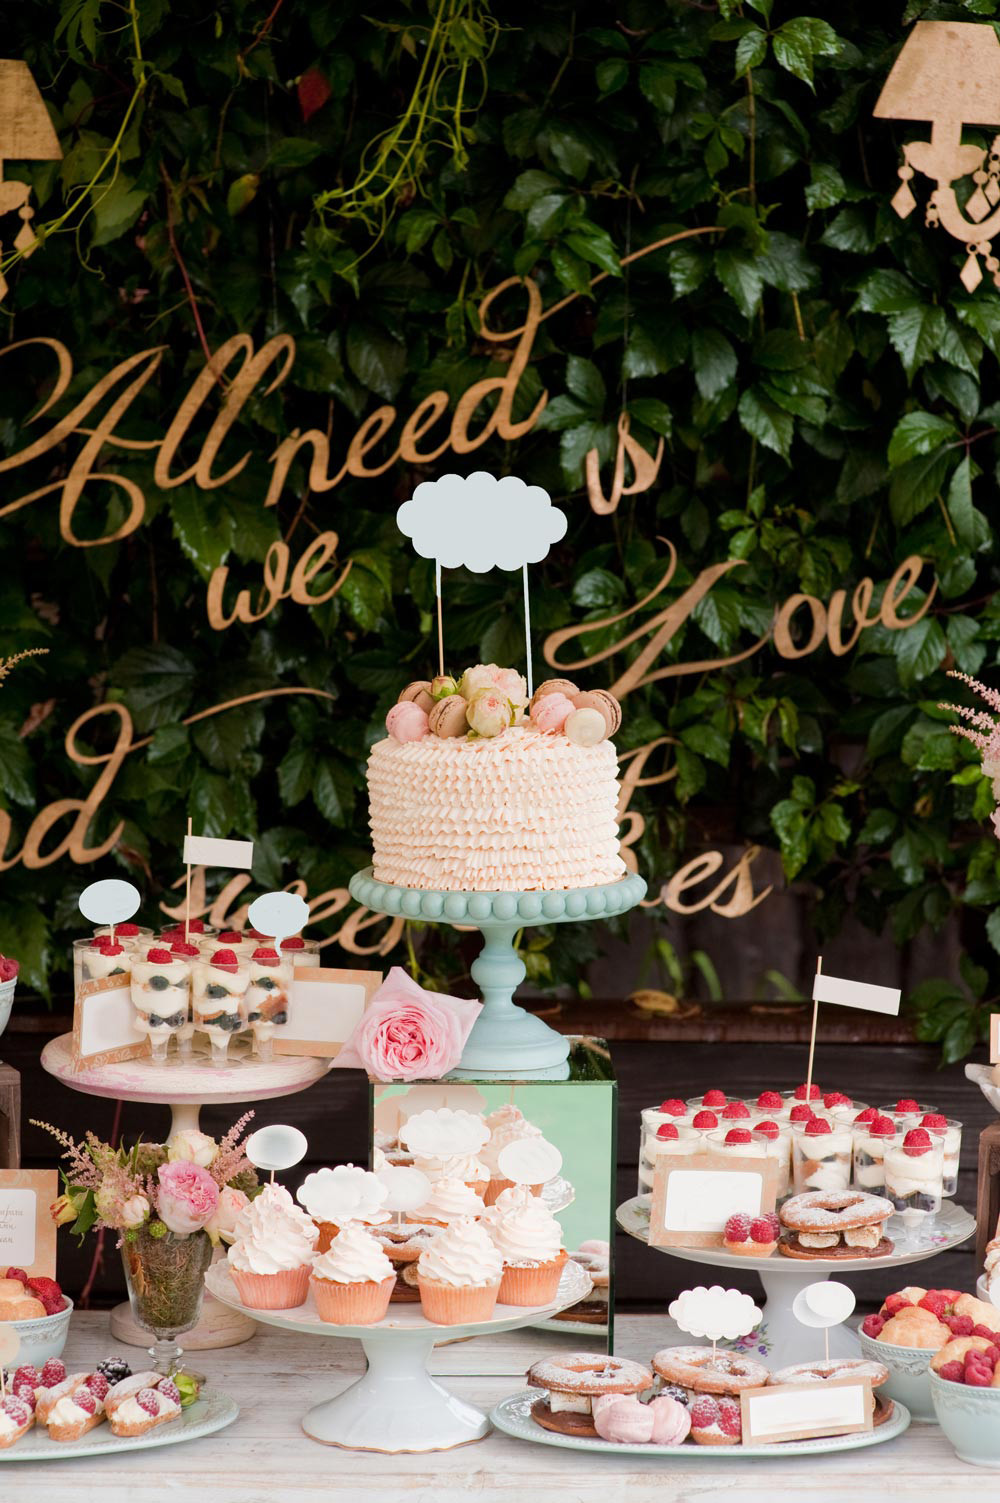 Wedding Cakes Display Ideas  Wedding Cake Displays